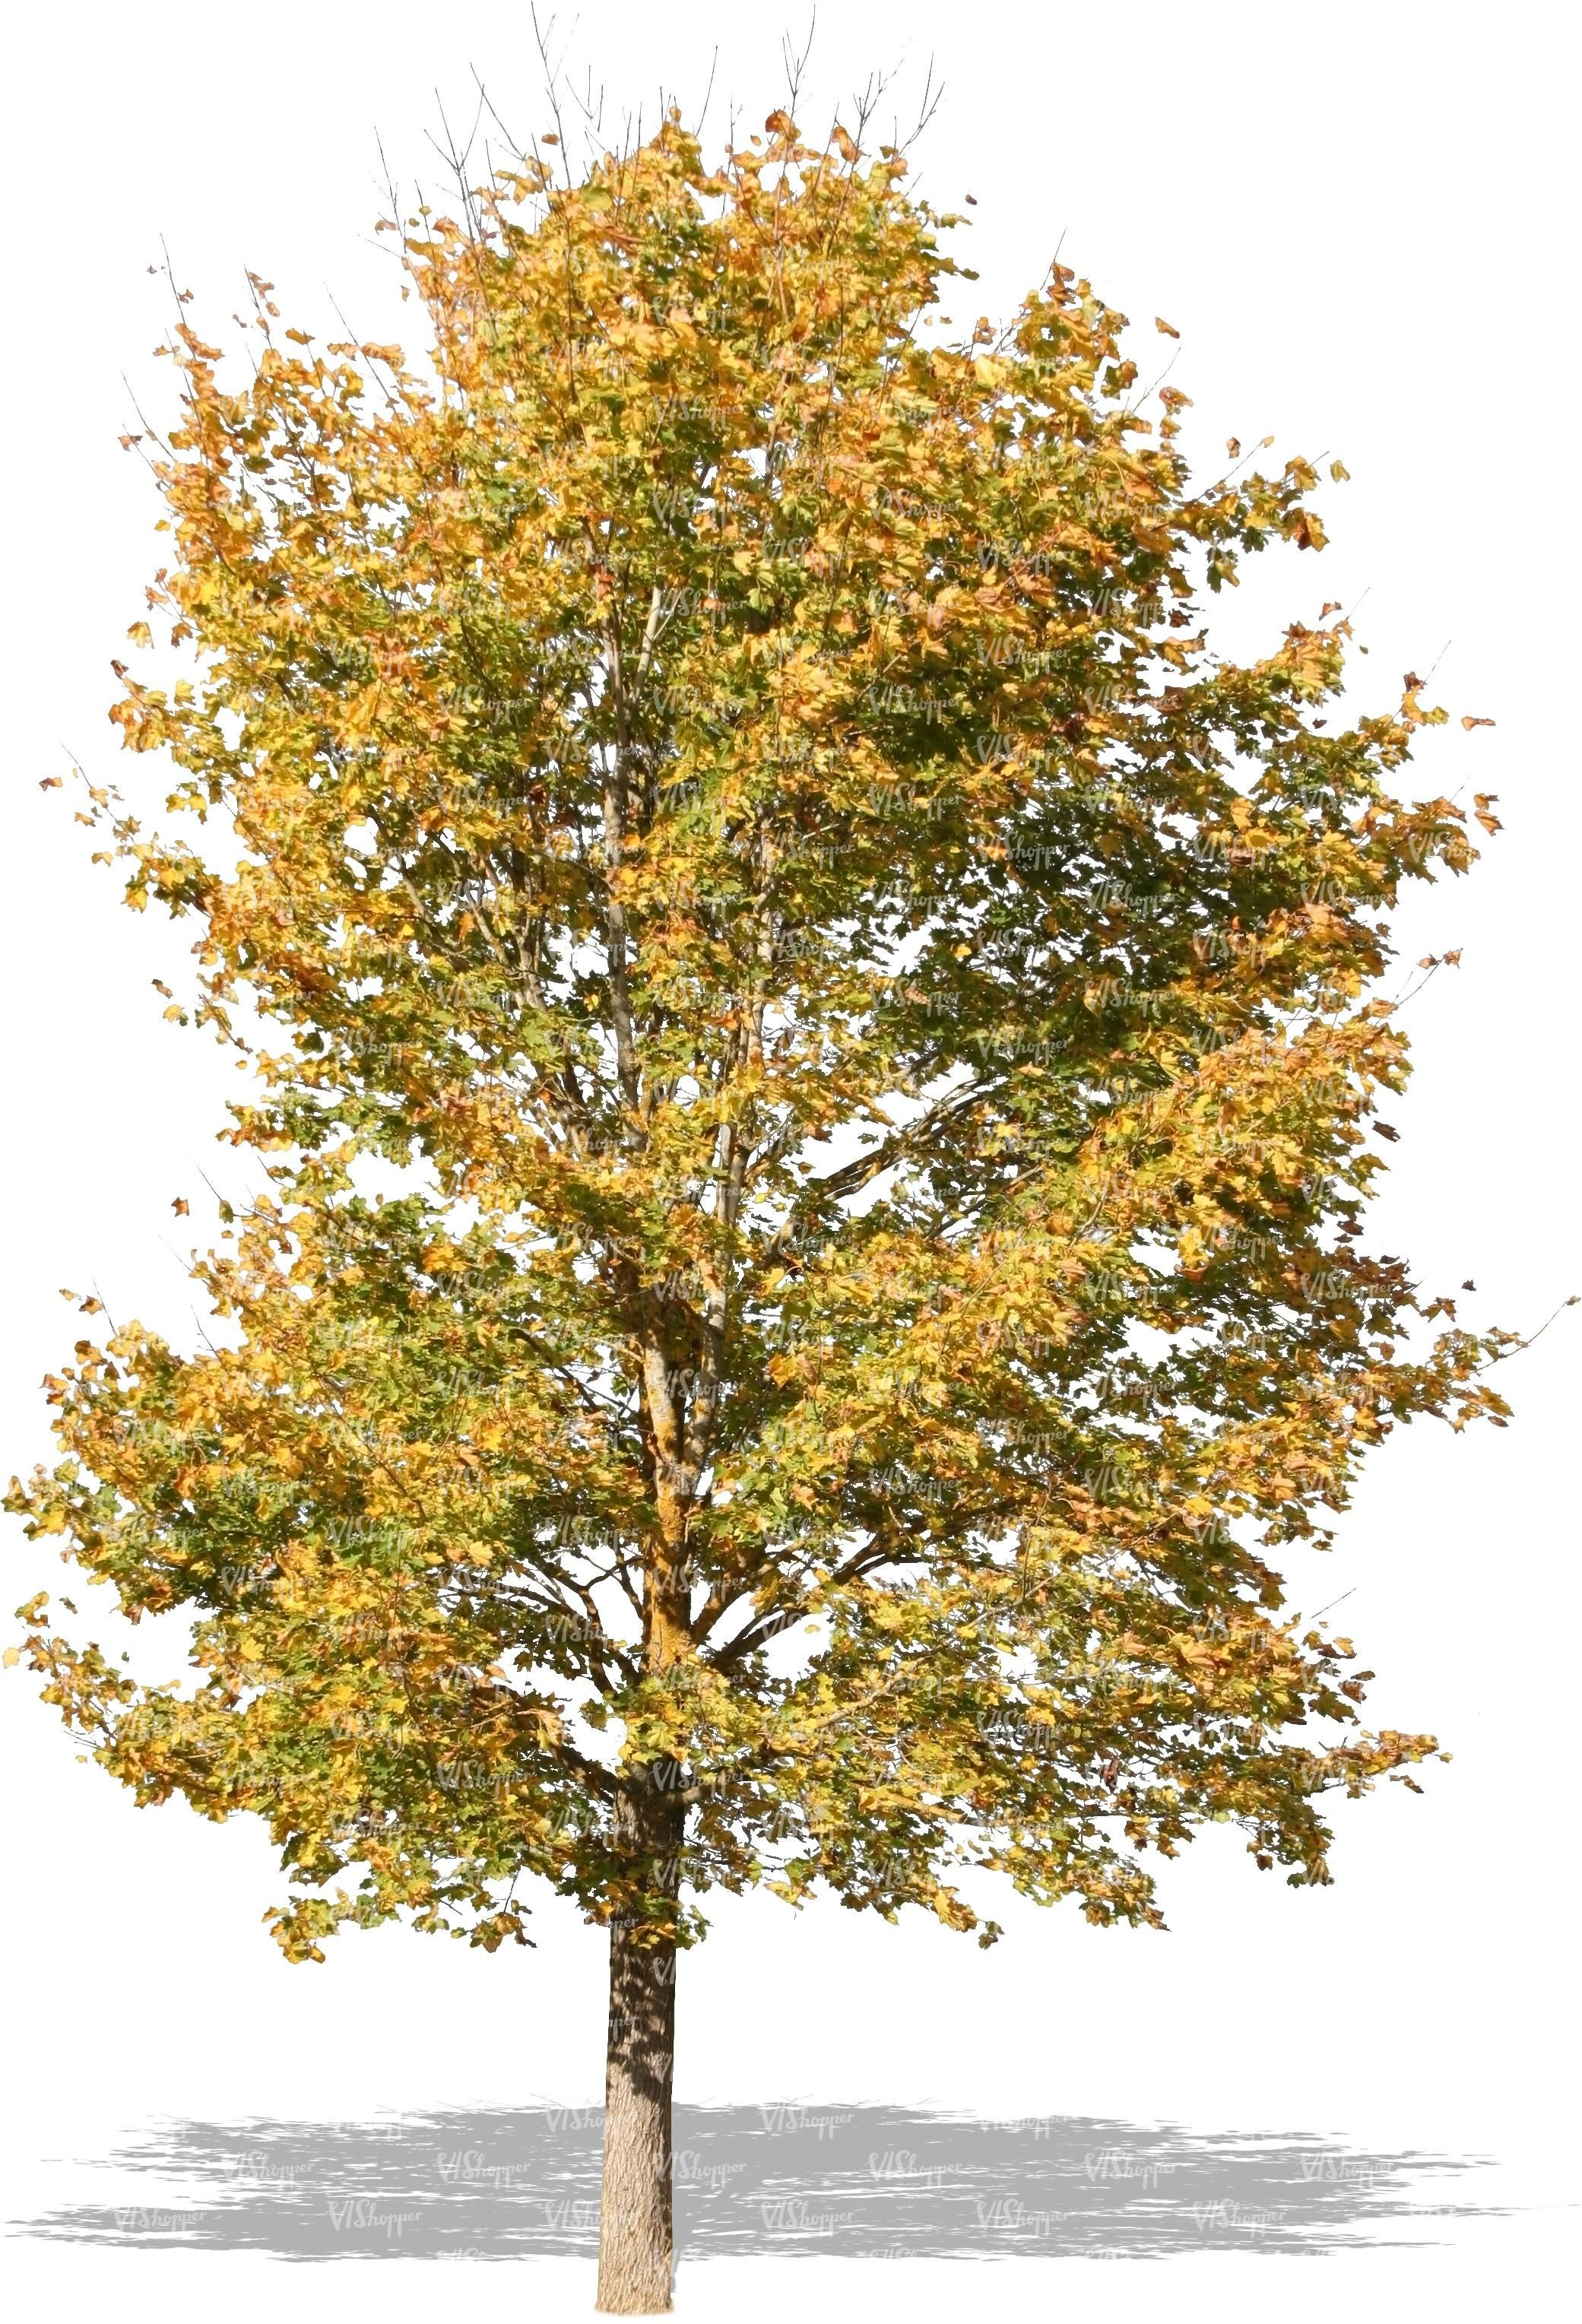 Pl591 | material | Pinterest | Autumn trees, Plants and ...